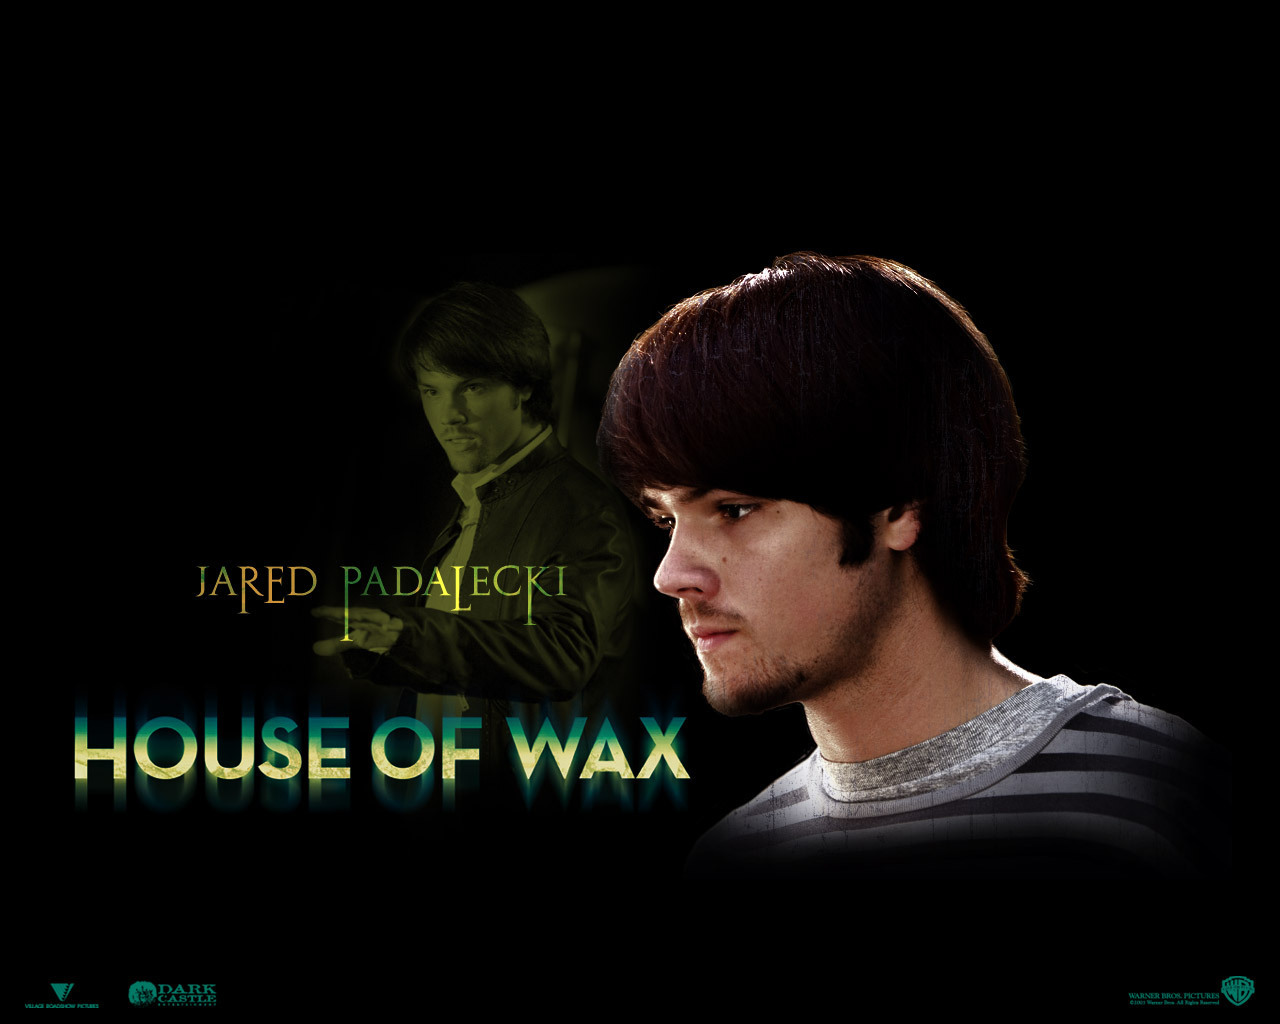 House of wax house of wax wallpaper 6211685 fanpop for House of wallpaper